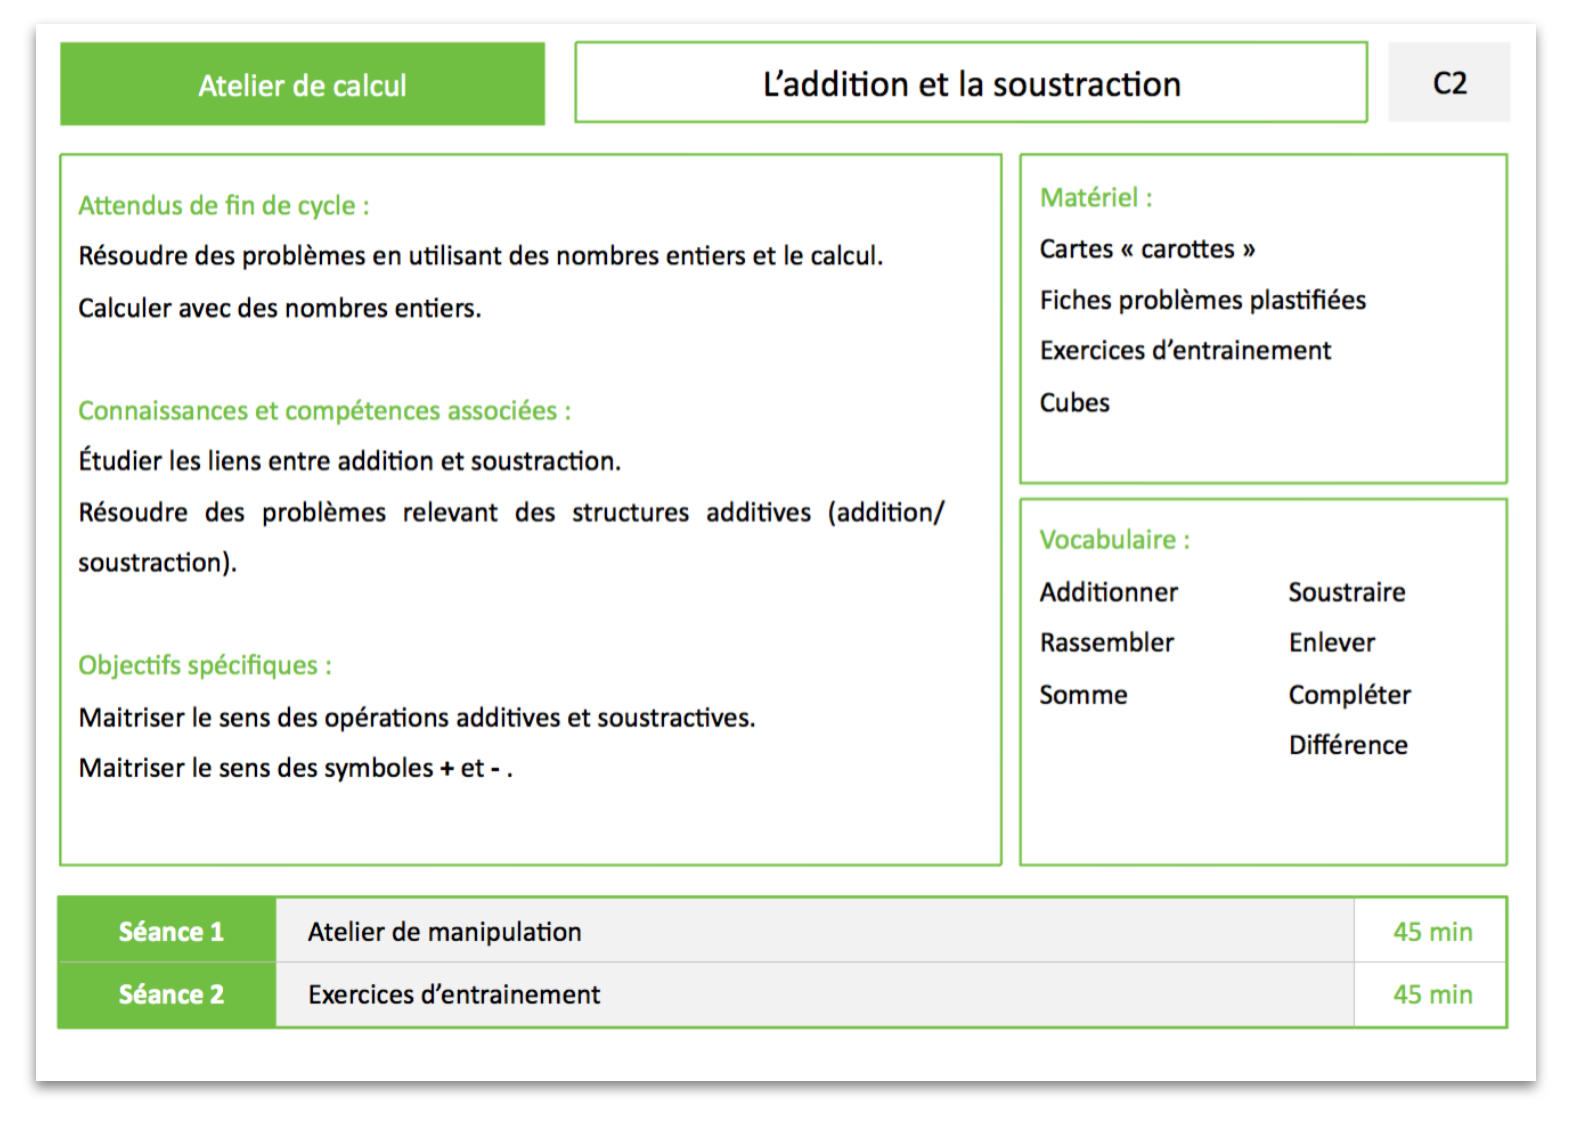 Atelier calcul - L'addition et la soustraction